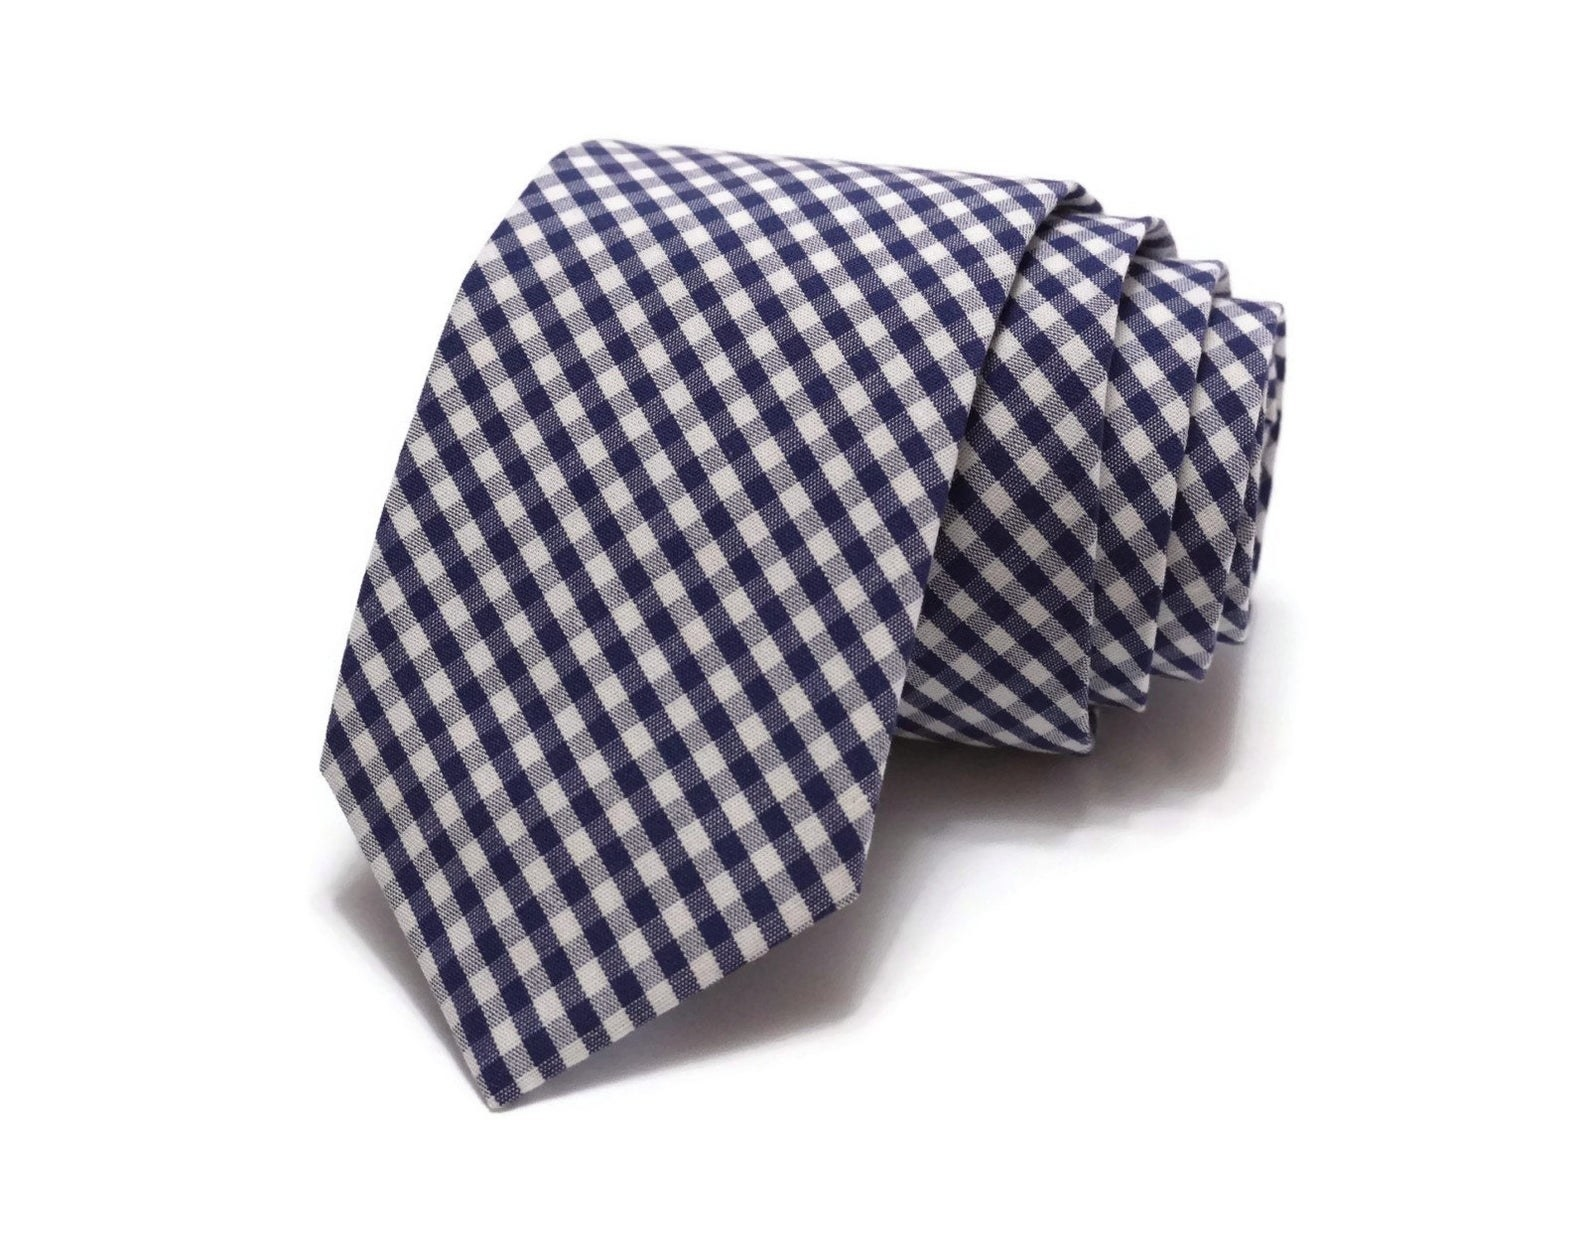 A navy blue gingham check tie rolled up